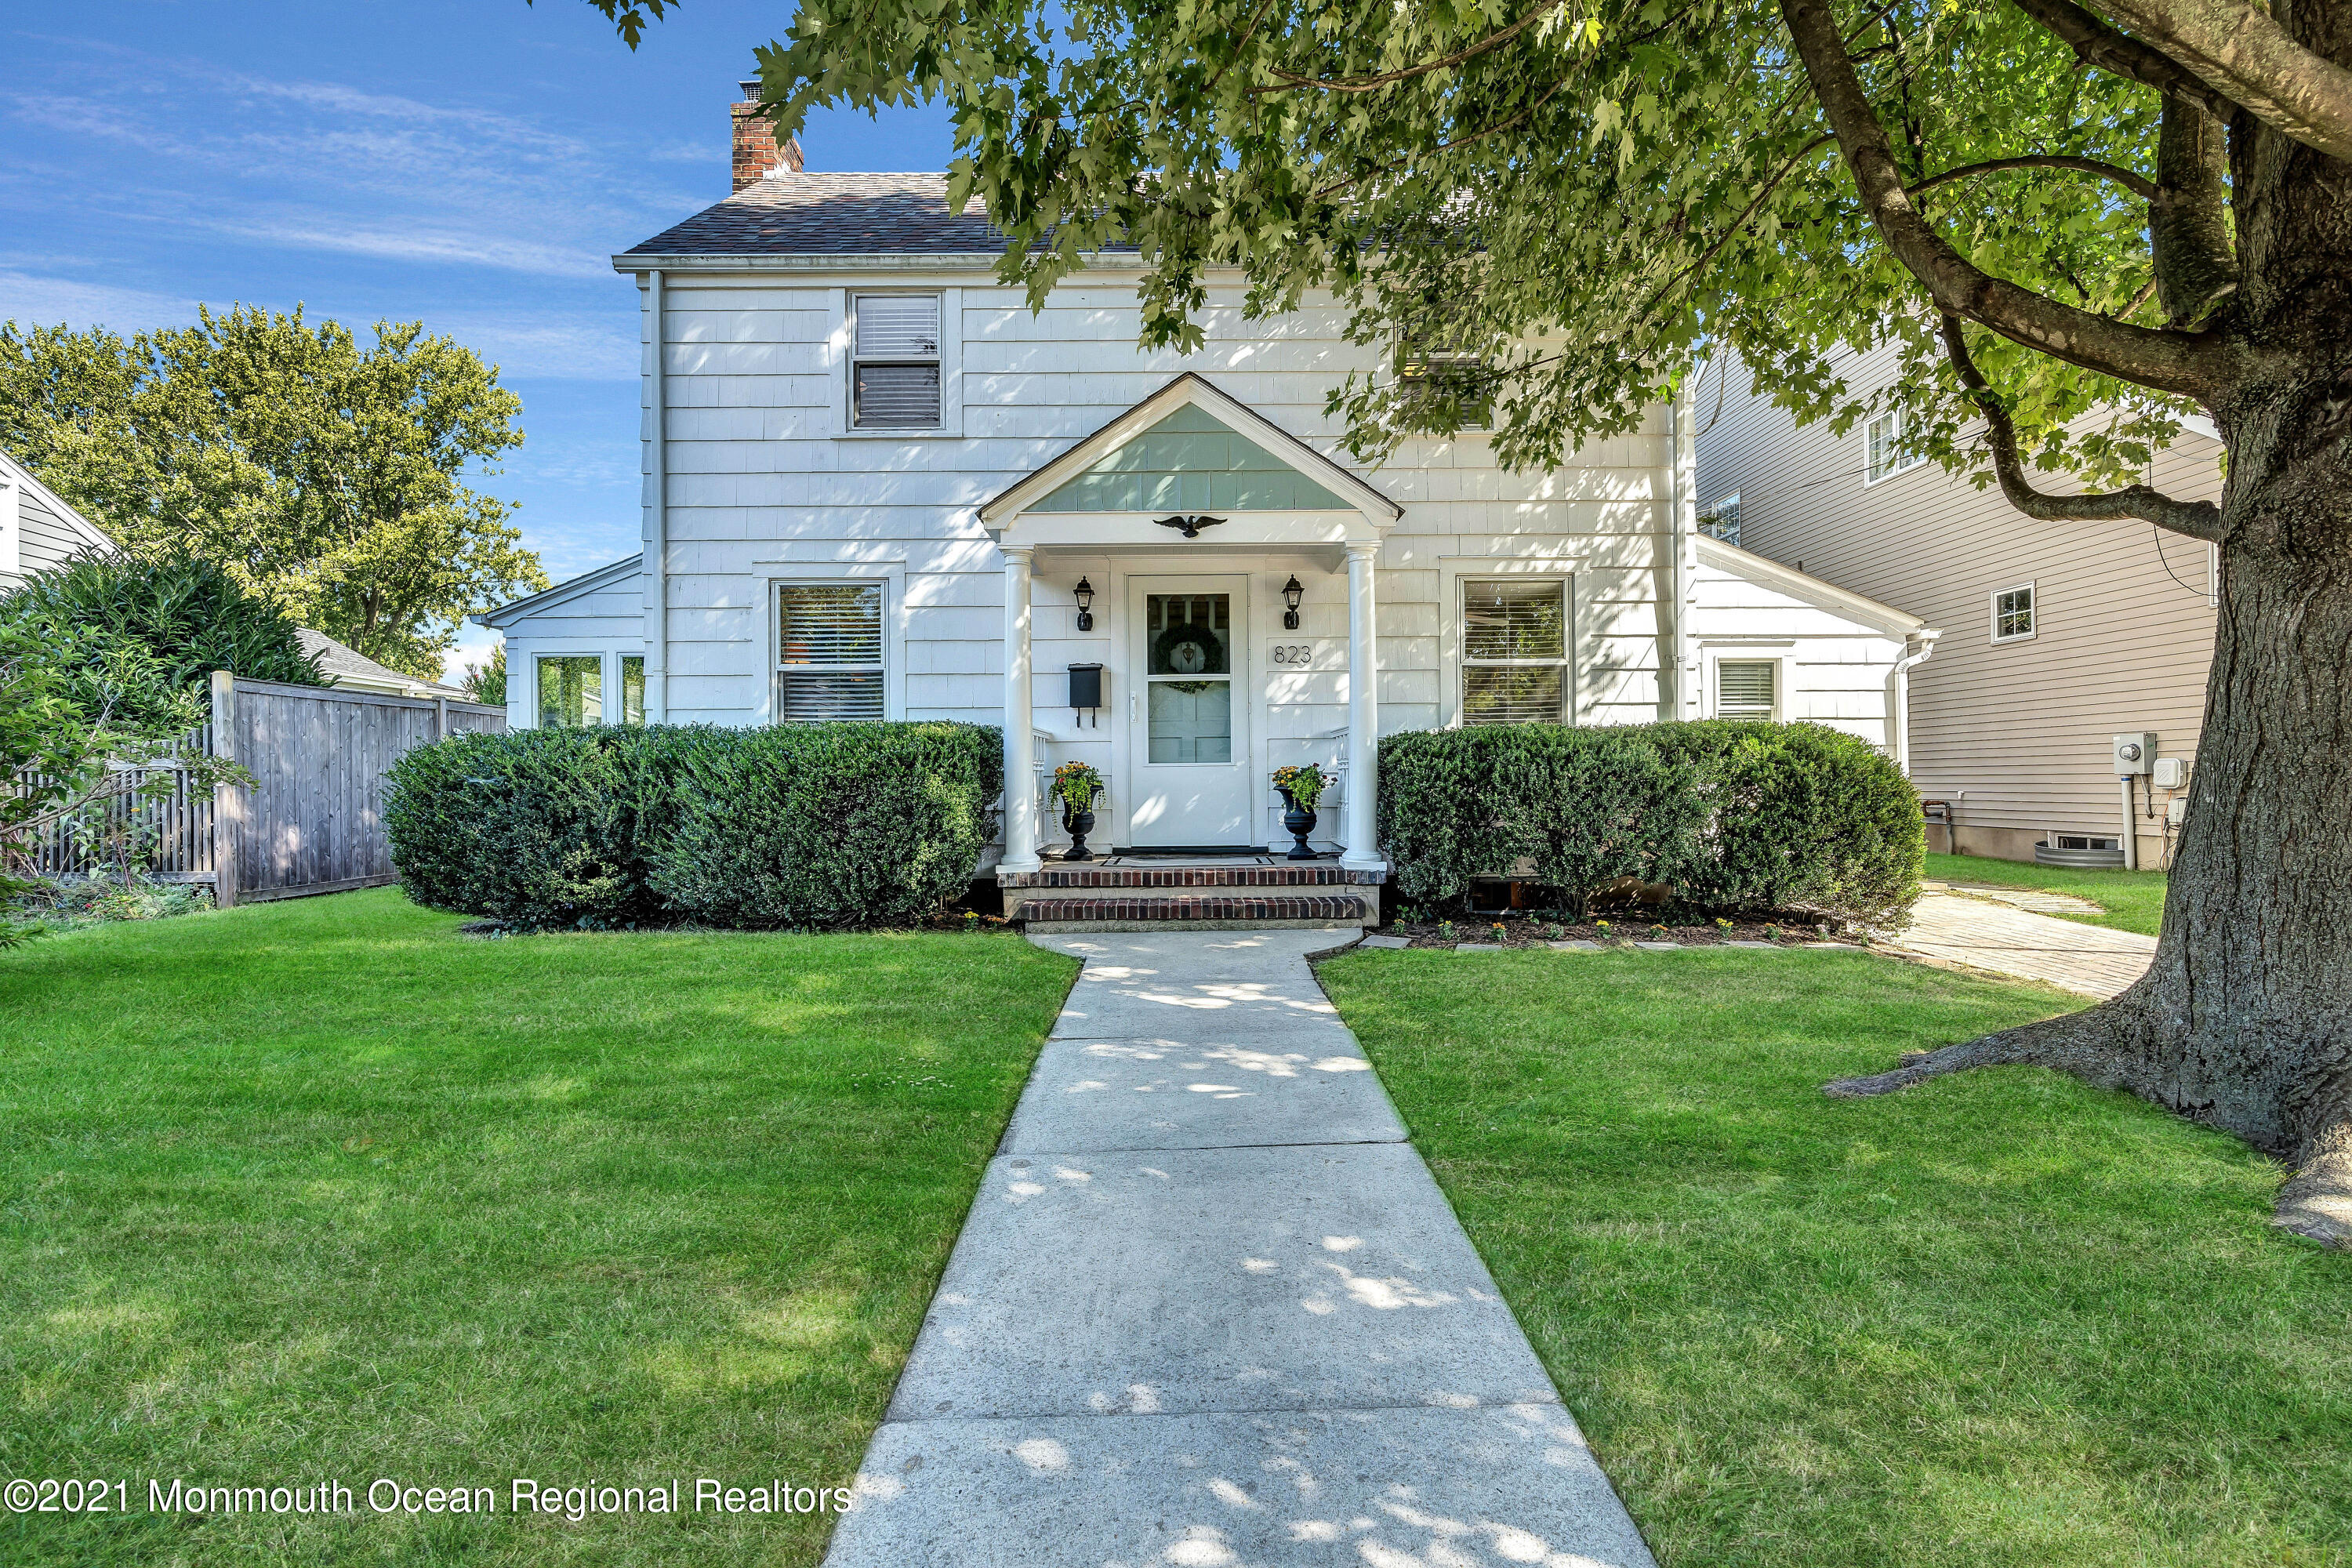 823 Briarcliff Avenue, Point Pleasant, New Jersey 08742, 2 Bedrooms Bedrooms, ,2 BathroomsBathrooms,Single Family,For Sale,823 Briarcliff Avenue,2,22131395